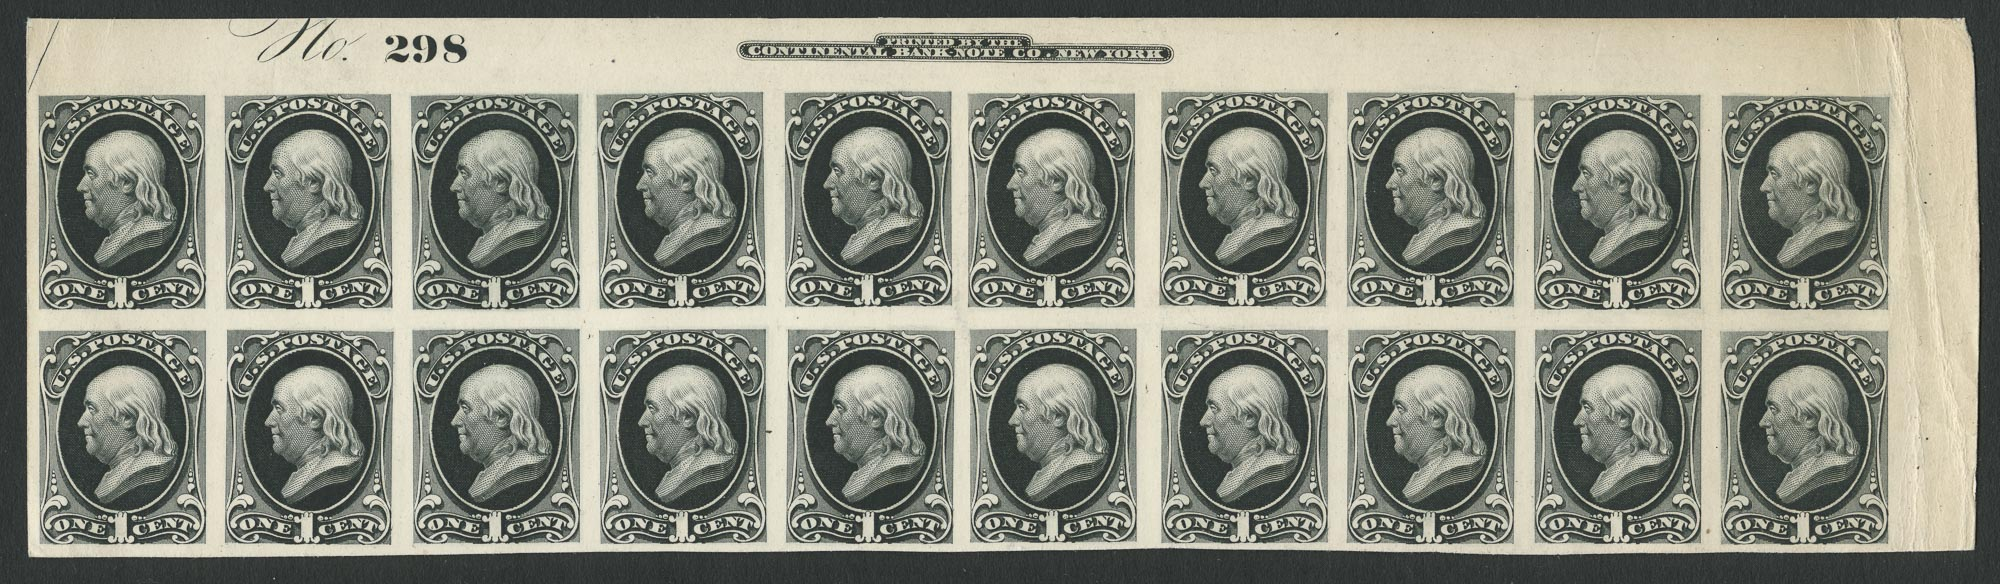 Lot image - United States One Cent Bank Note Proof, Sc. Type A44